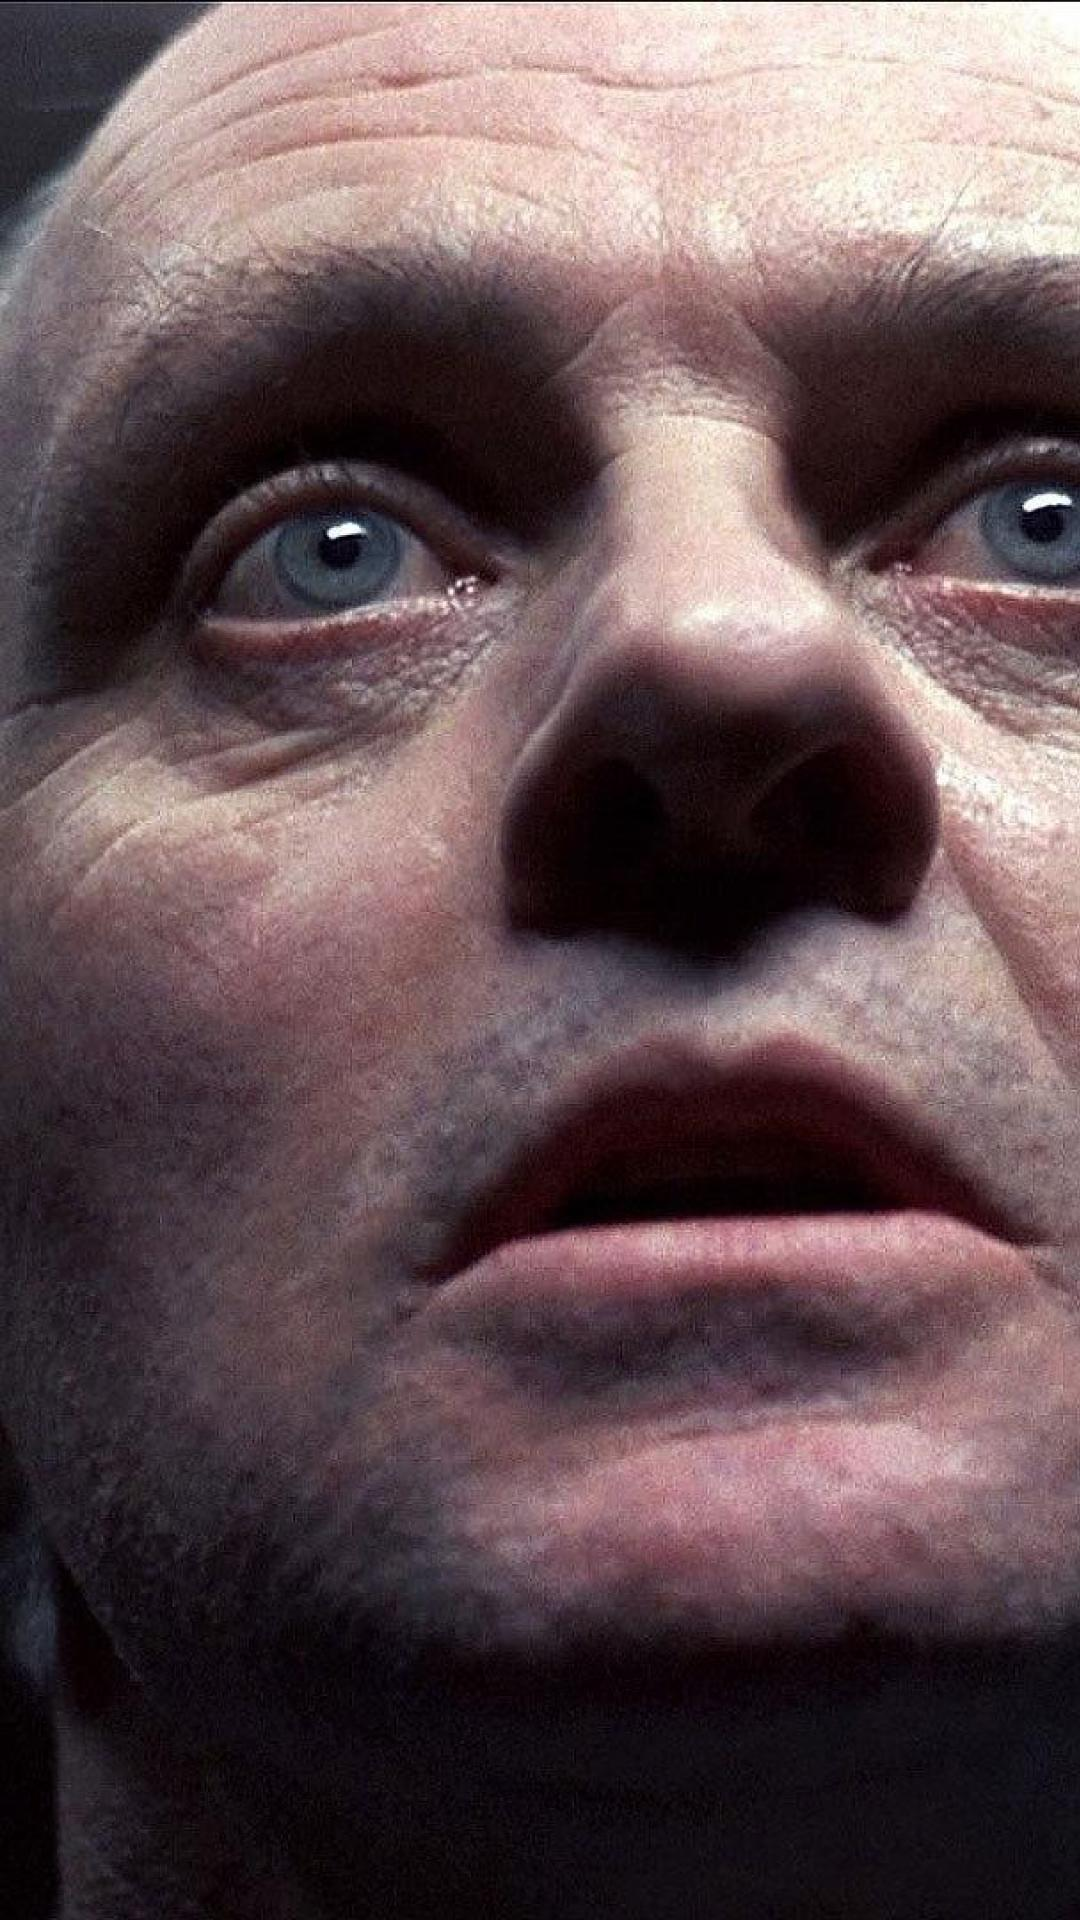 Silence of the lambs wallpaper Gallery